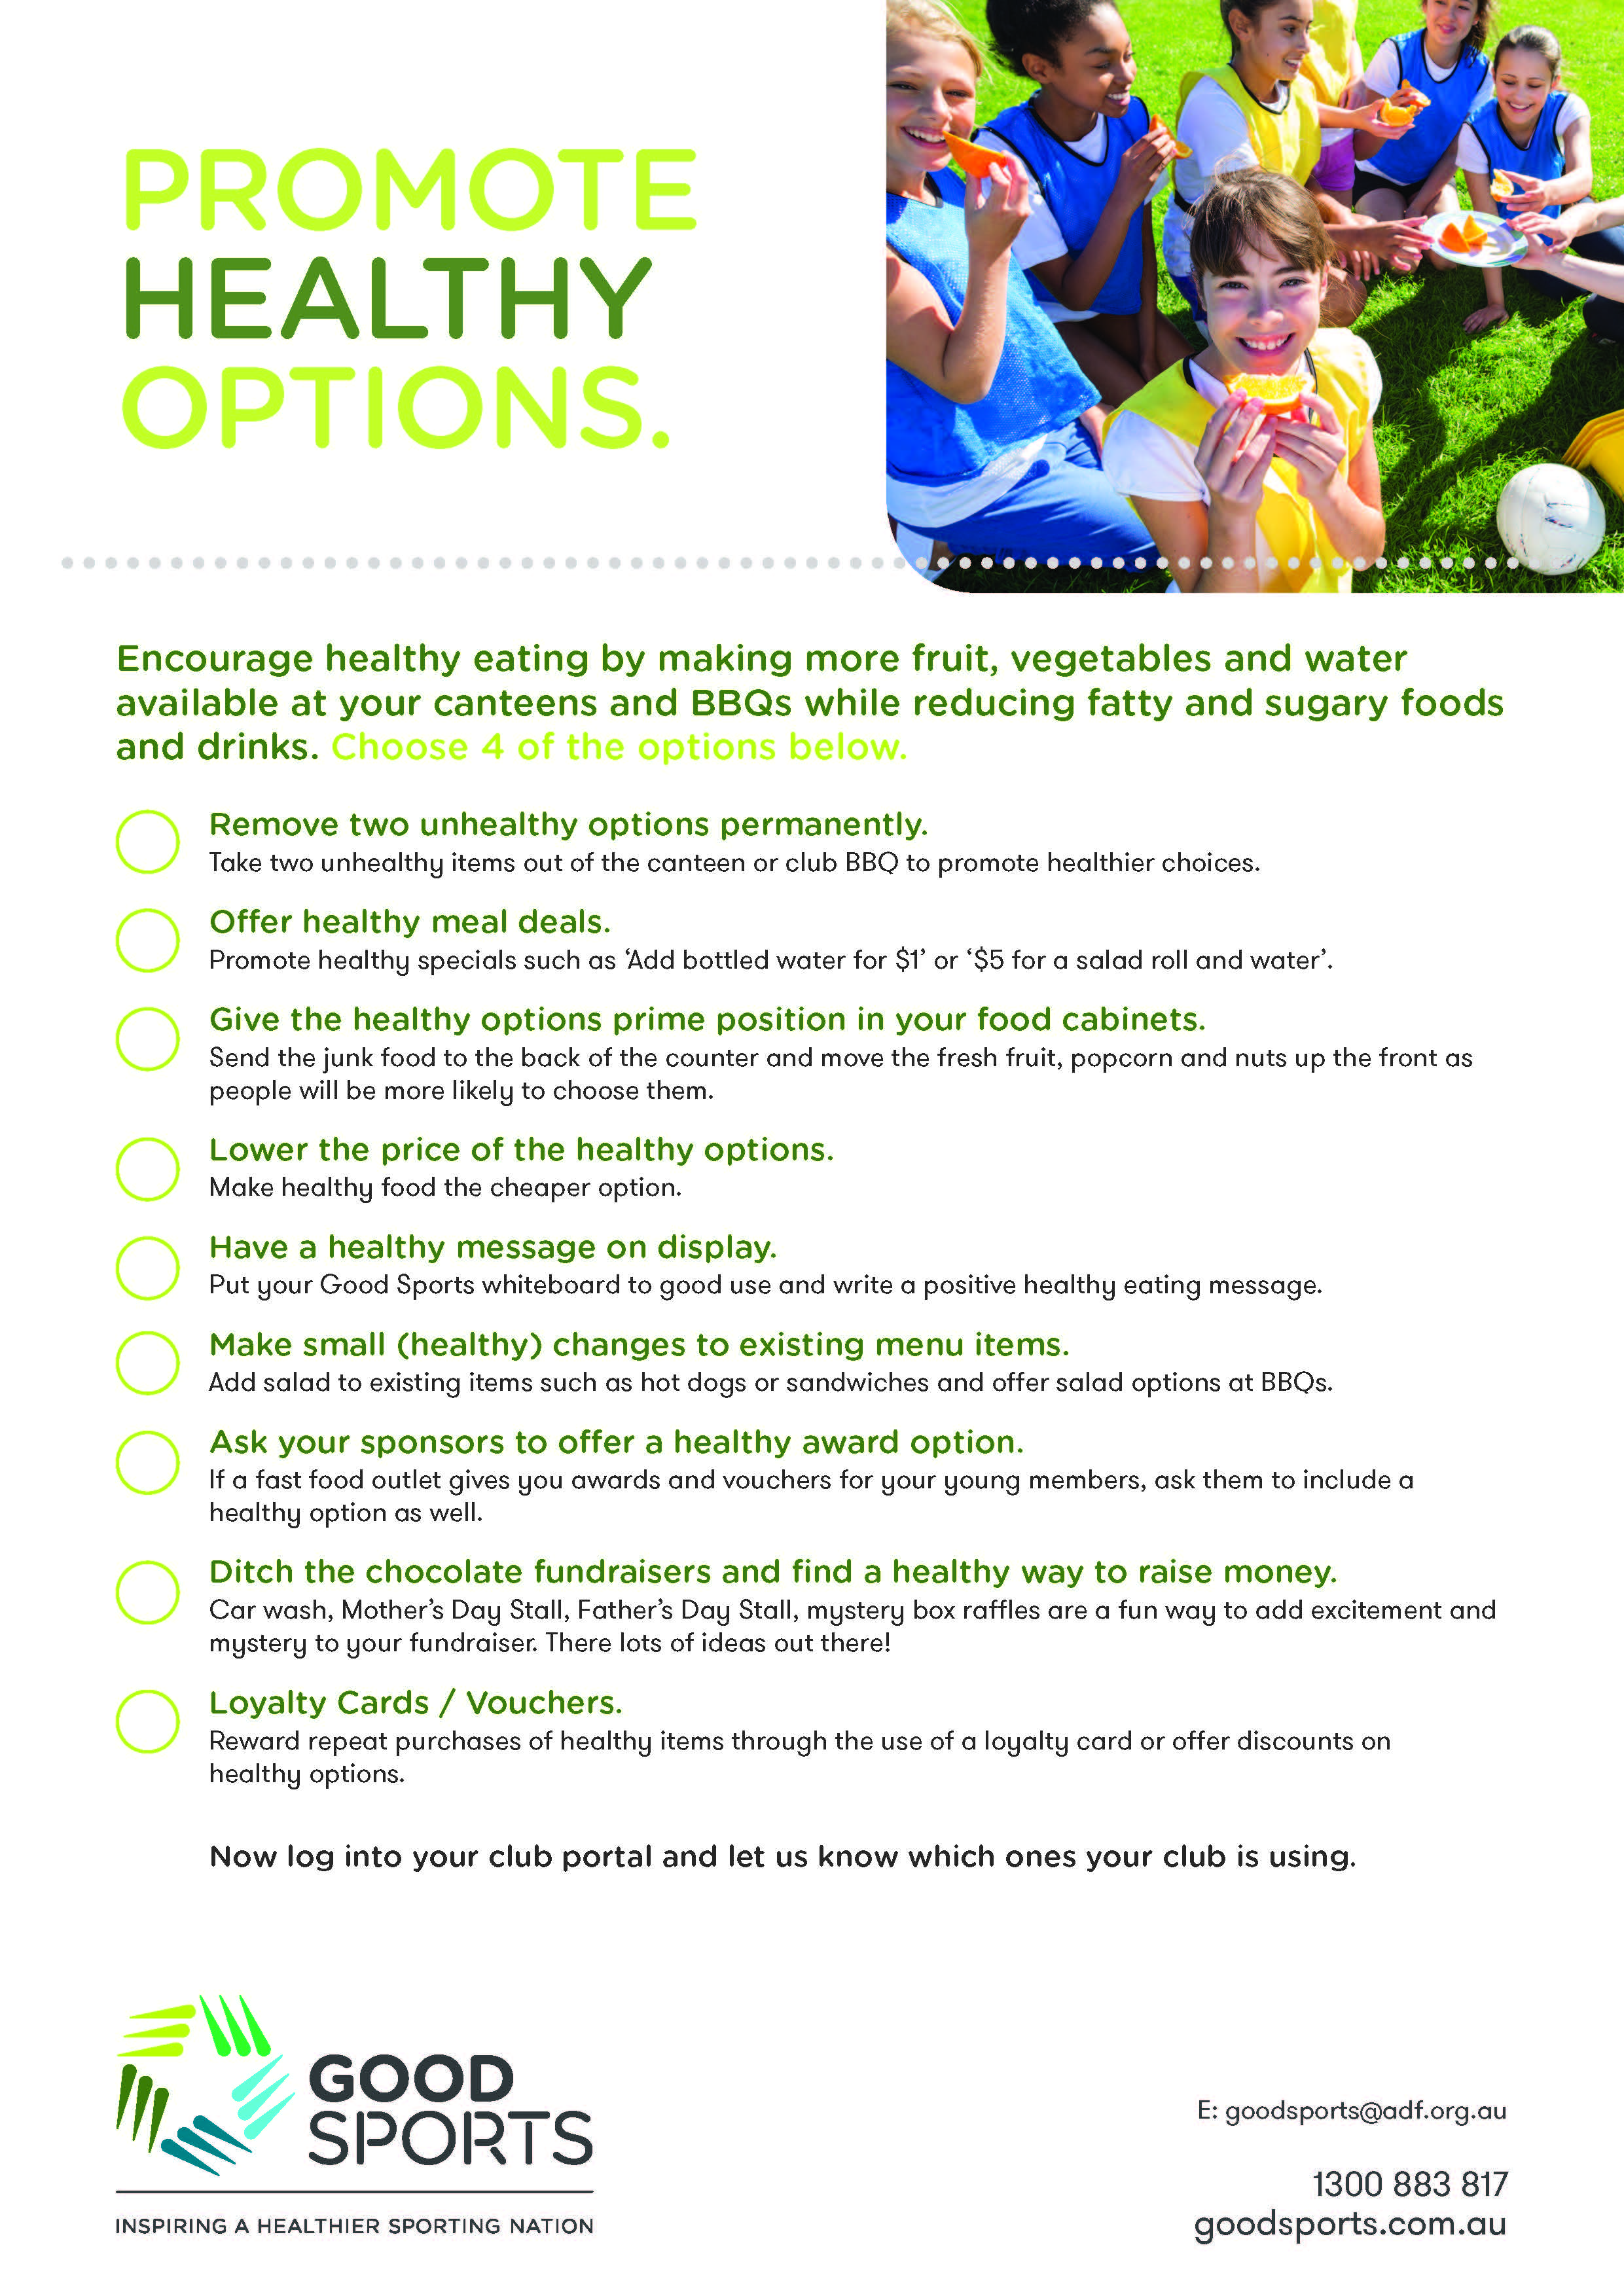 Promote Healthy Options doc